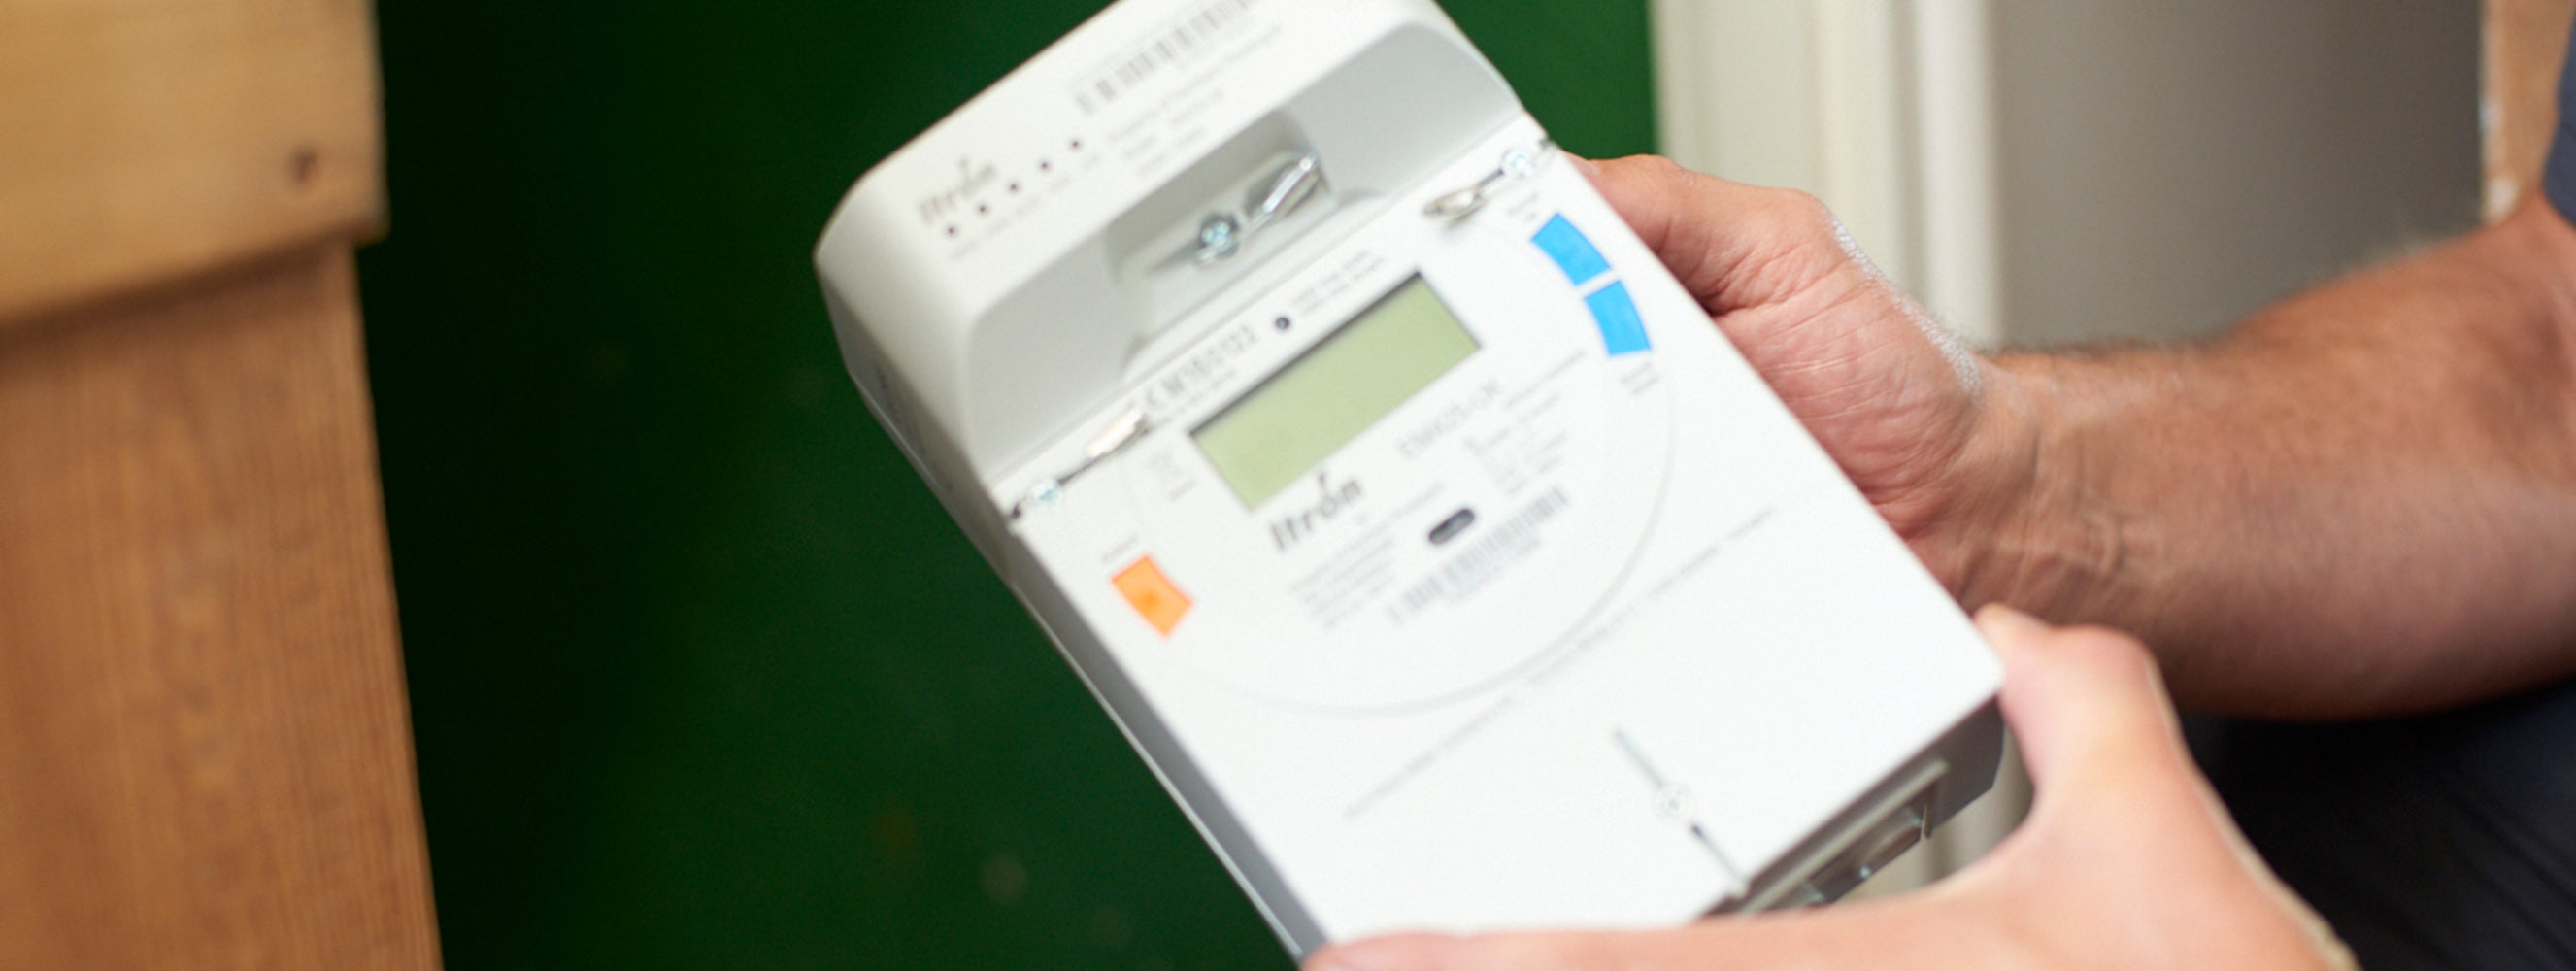 Smart Meters - what you need to know